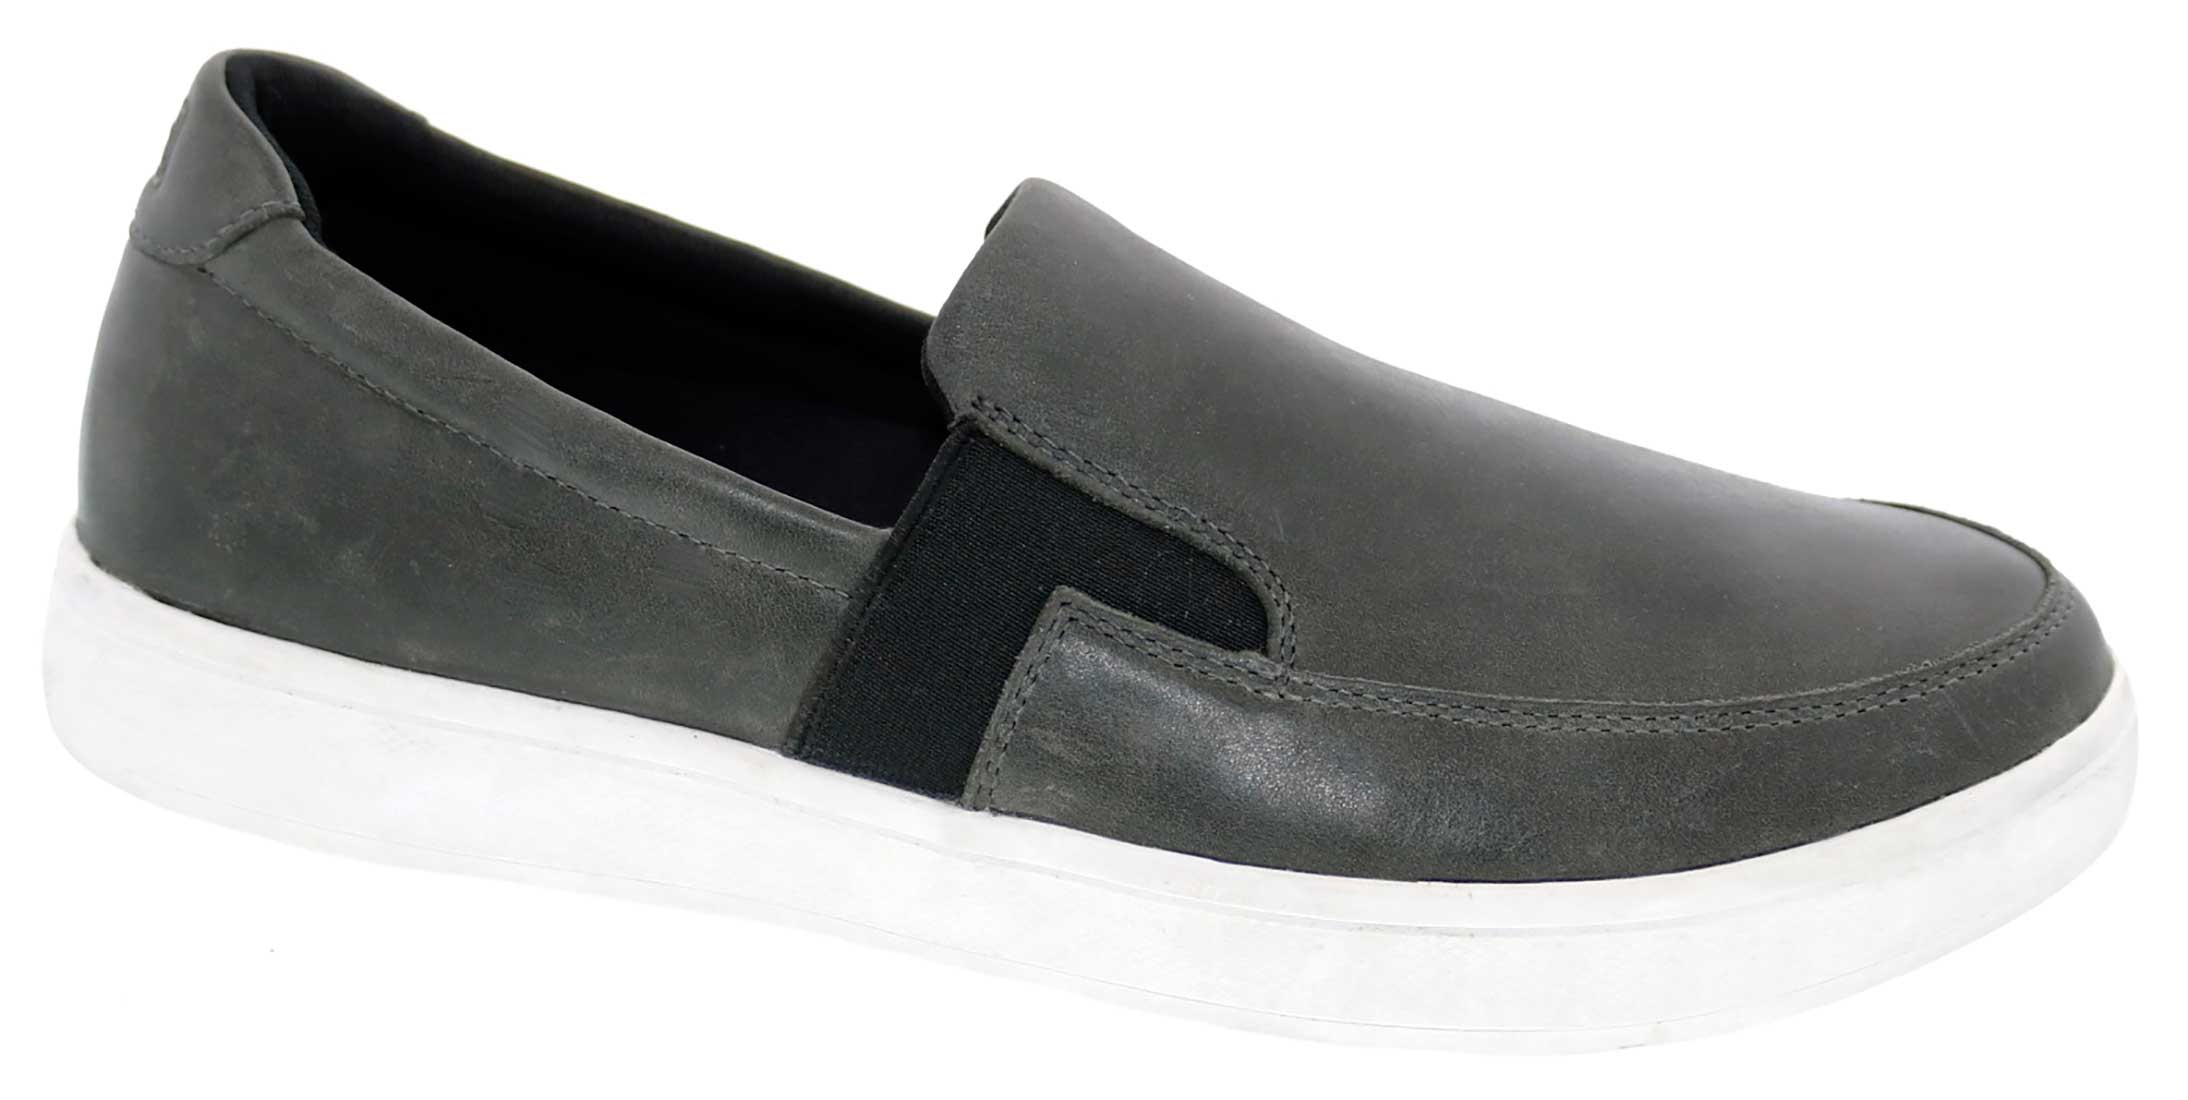 Drew Shoes - Jump - Dark/Grey - Casual, Dress